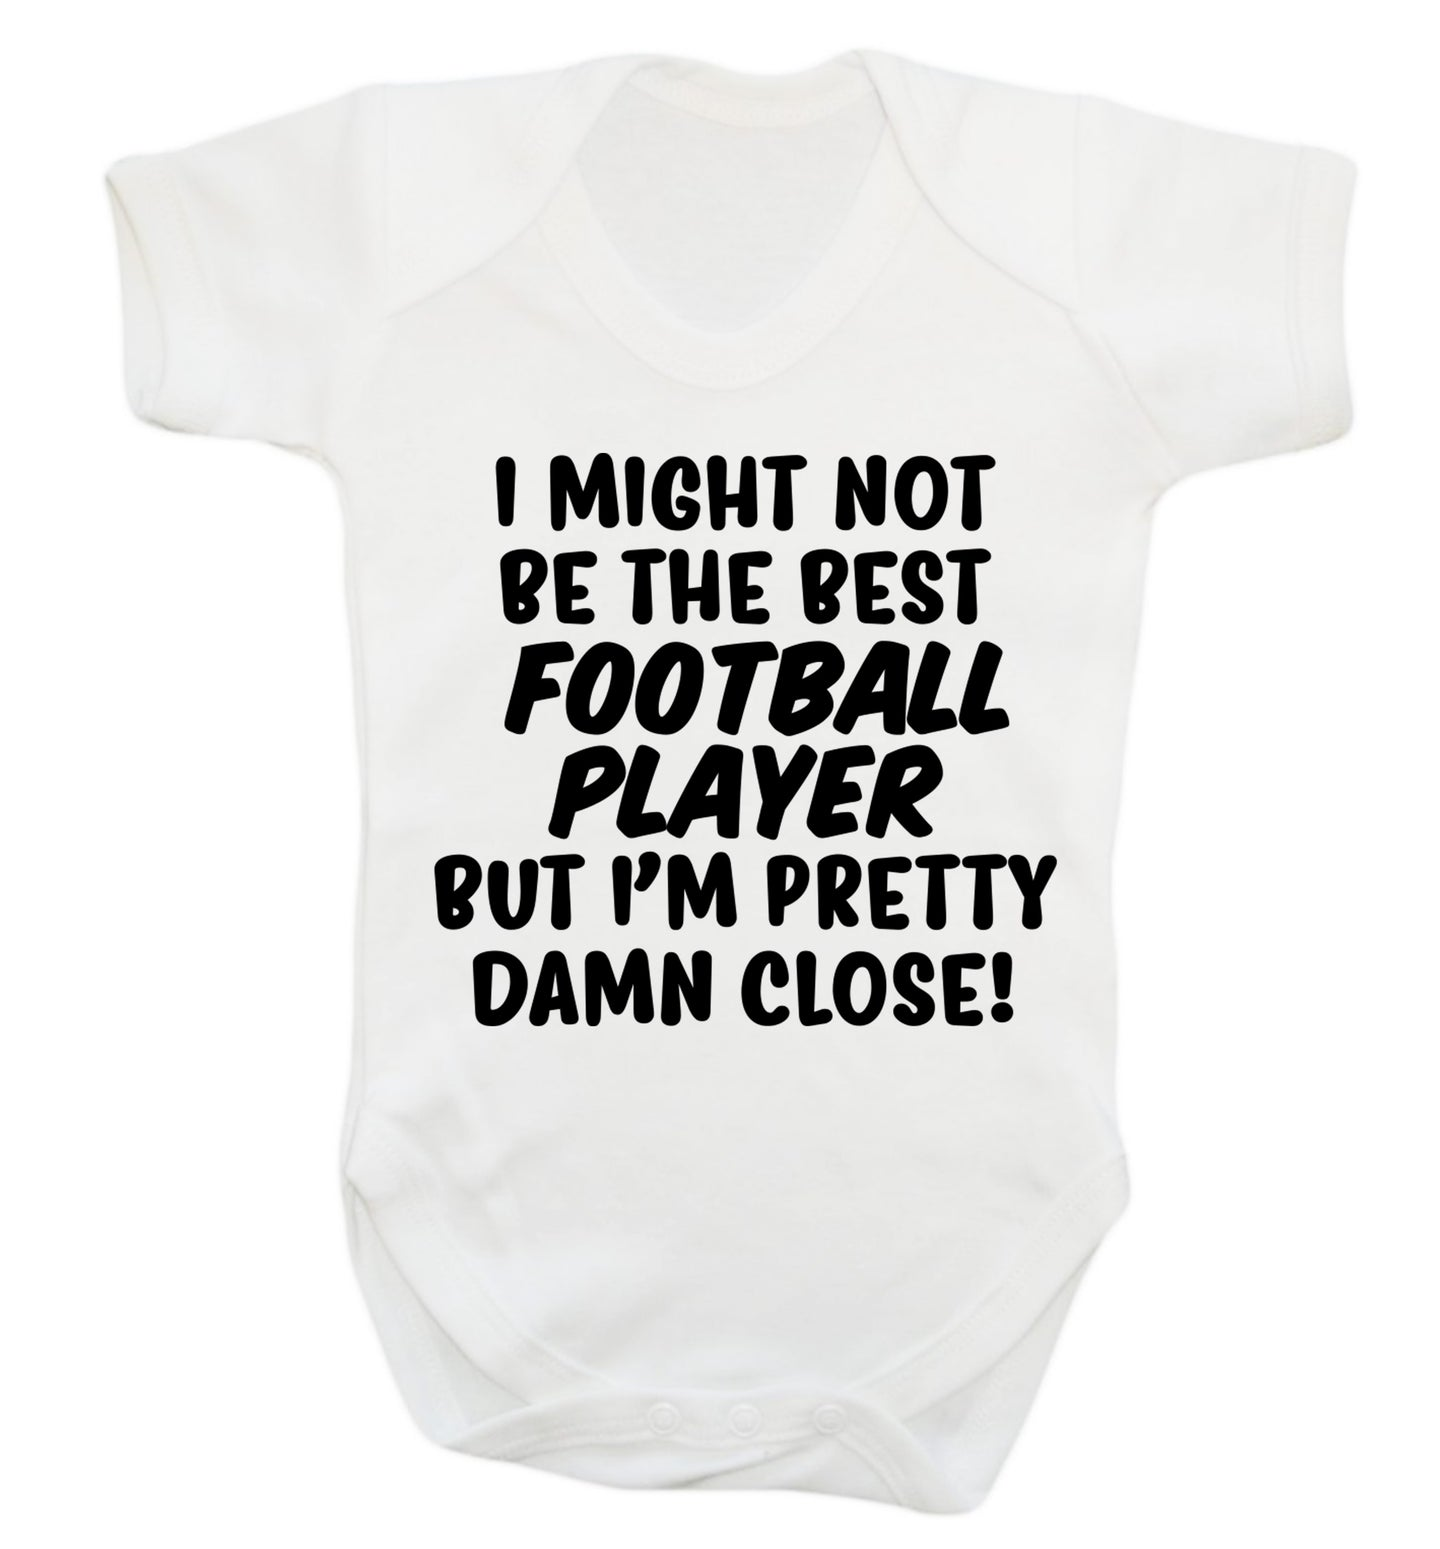 I might not be the best football player but I'm pretty close! Baby Vest white 18-24 months